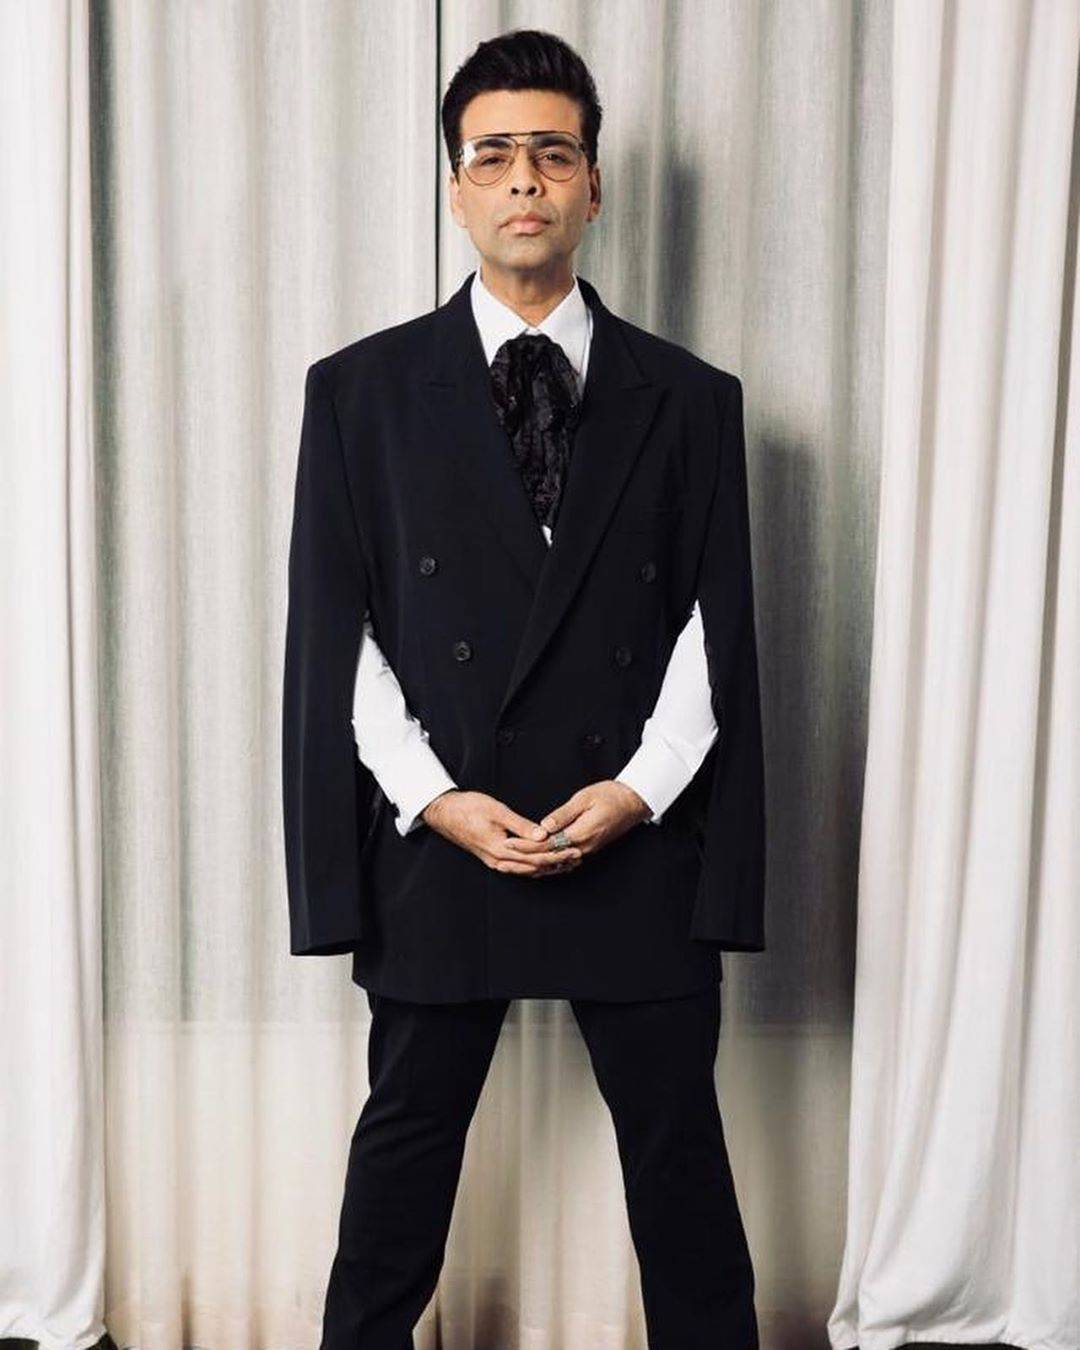 Filmmaker Karan Johar, who has been turning heads at the 2019 Indian Film Festival of Melbourne as much as any other star, has impressed us in some dapper suits.